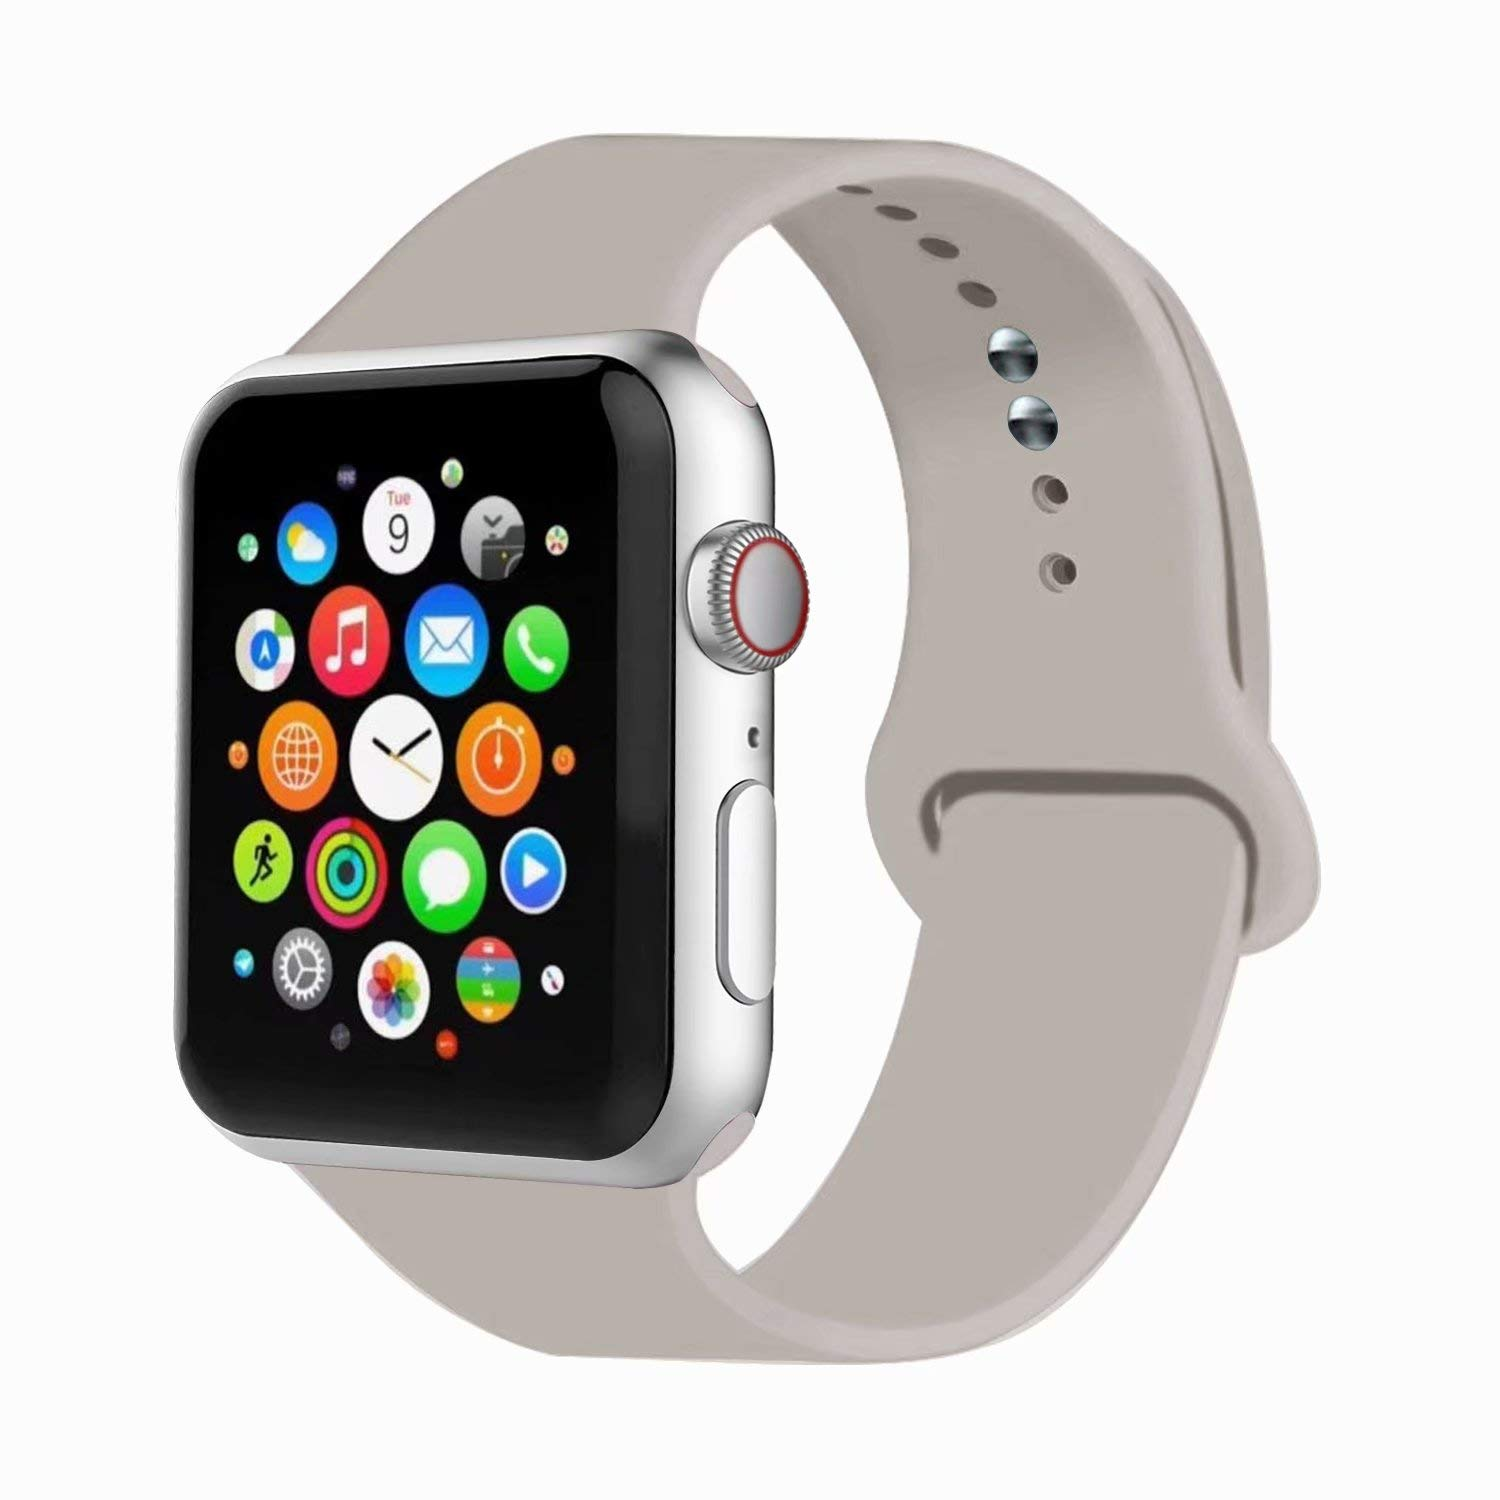 IYOU Sport Watch Band Compatible with Watch 38MM 42MM 40MM 44MM, Soft Silicone Replacement Sport Strap Compatible with Watch Series 5/4/3/2/1